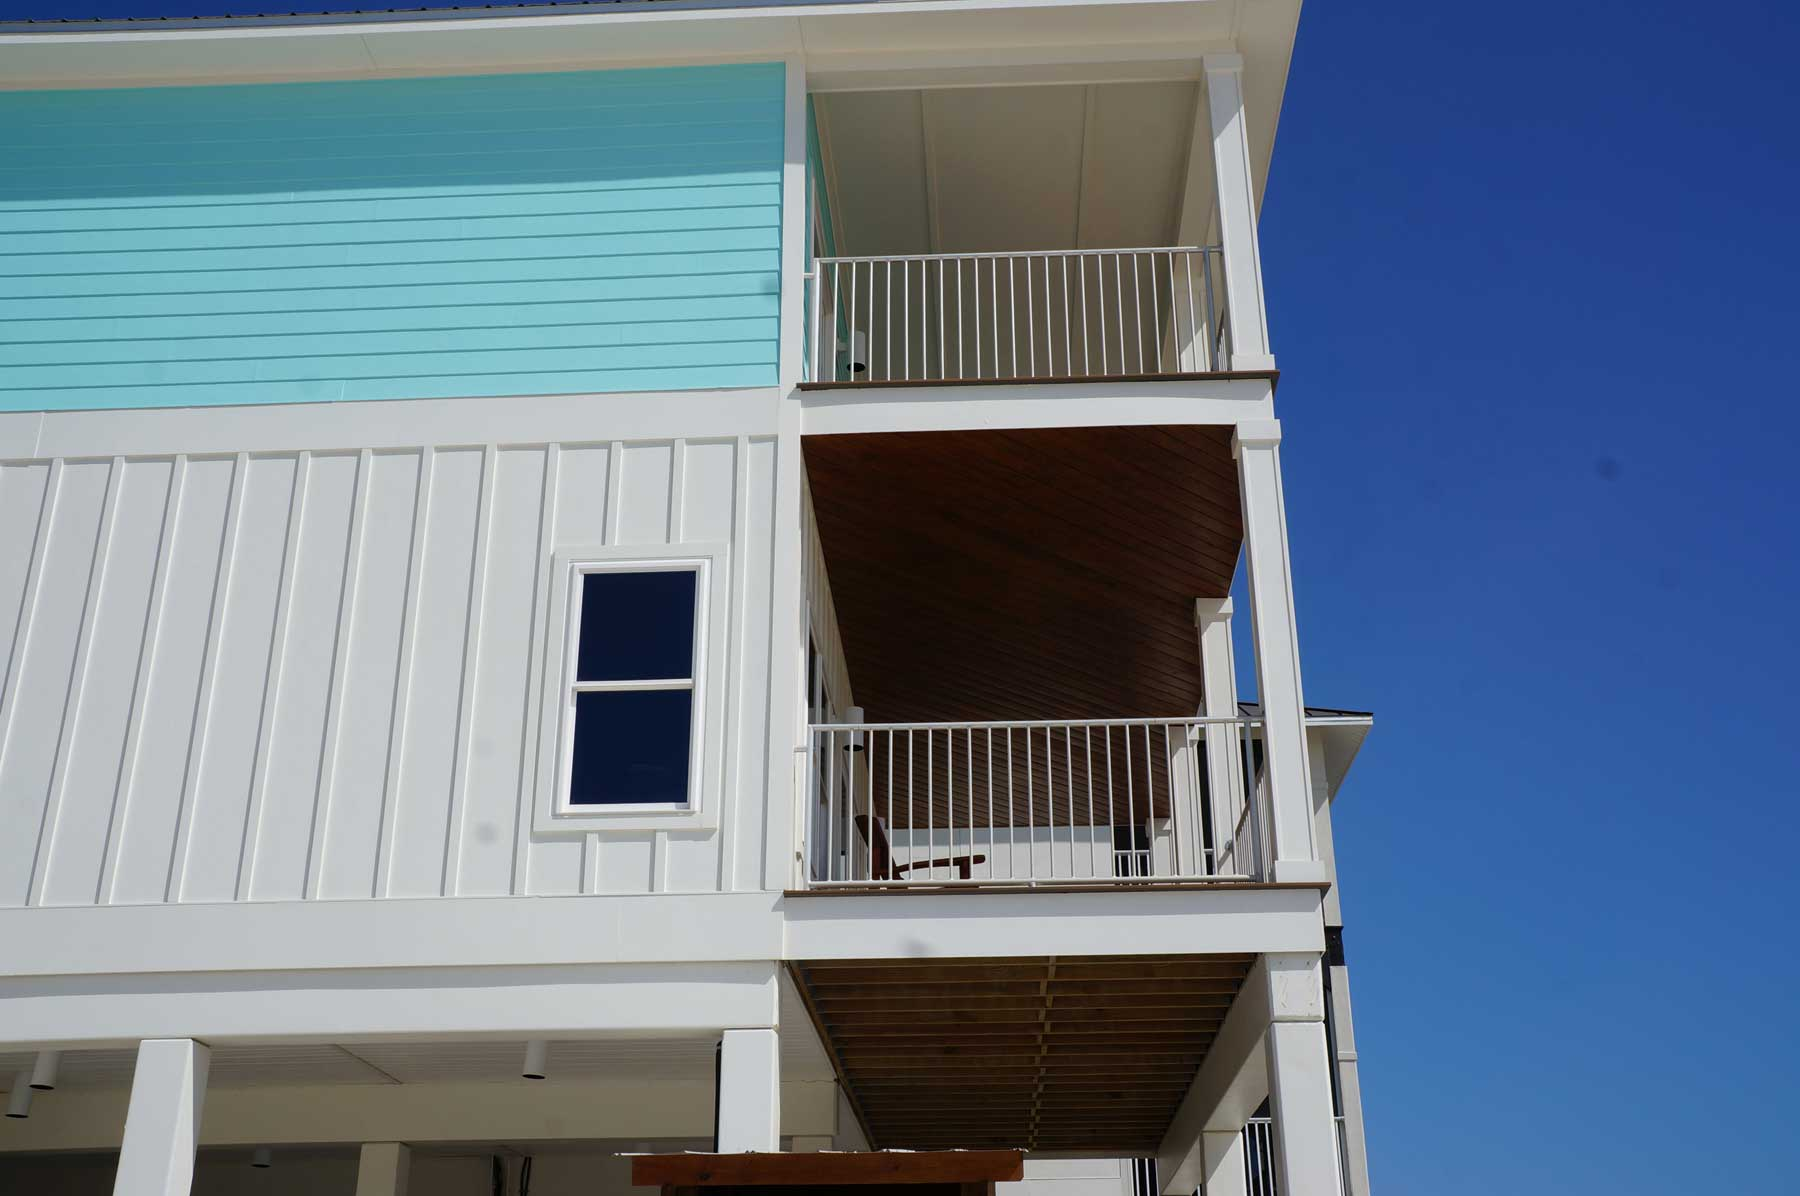 Side yard view of decks on both upper floors. New beach house construction in Mexico Beach, FLA.